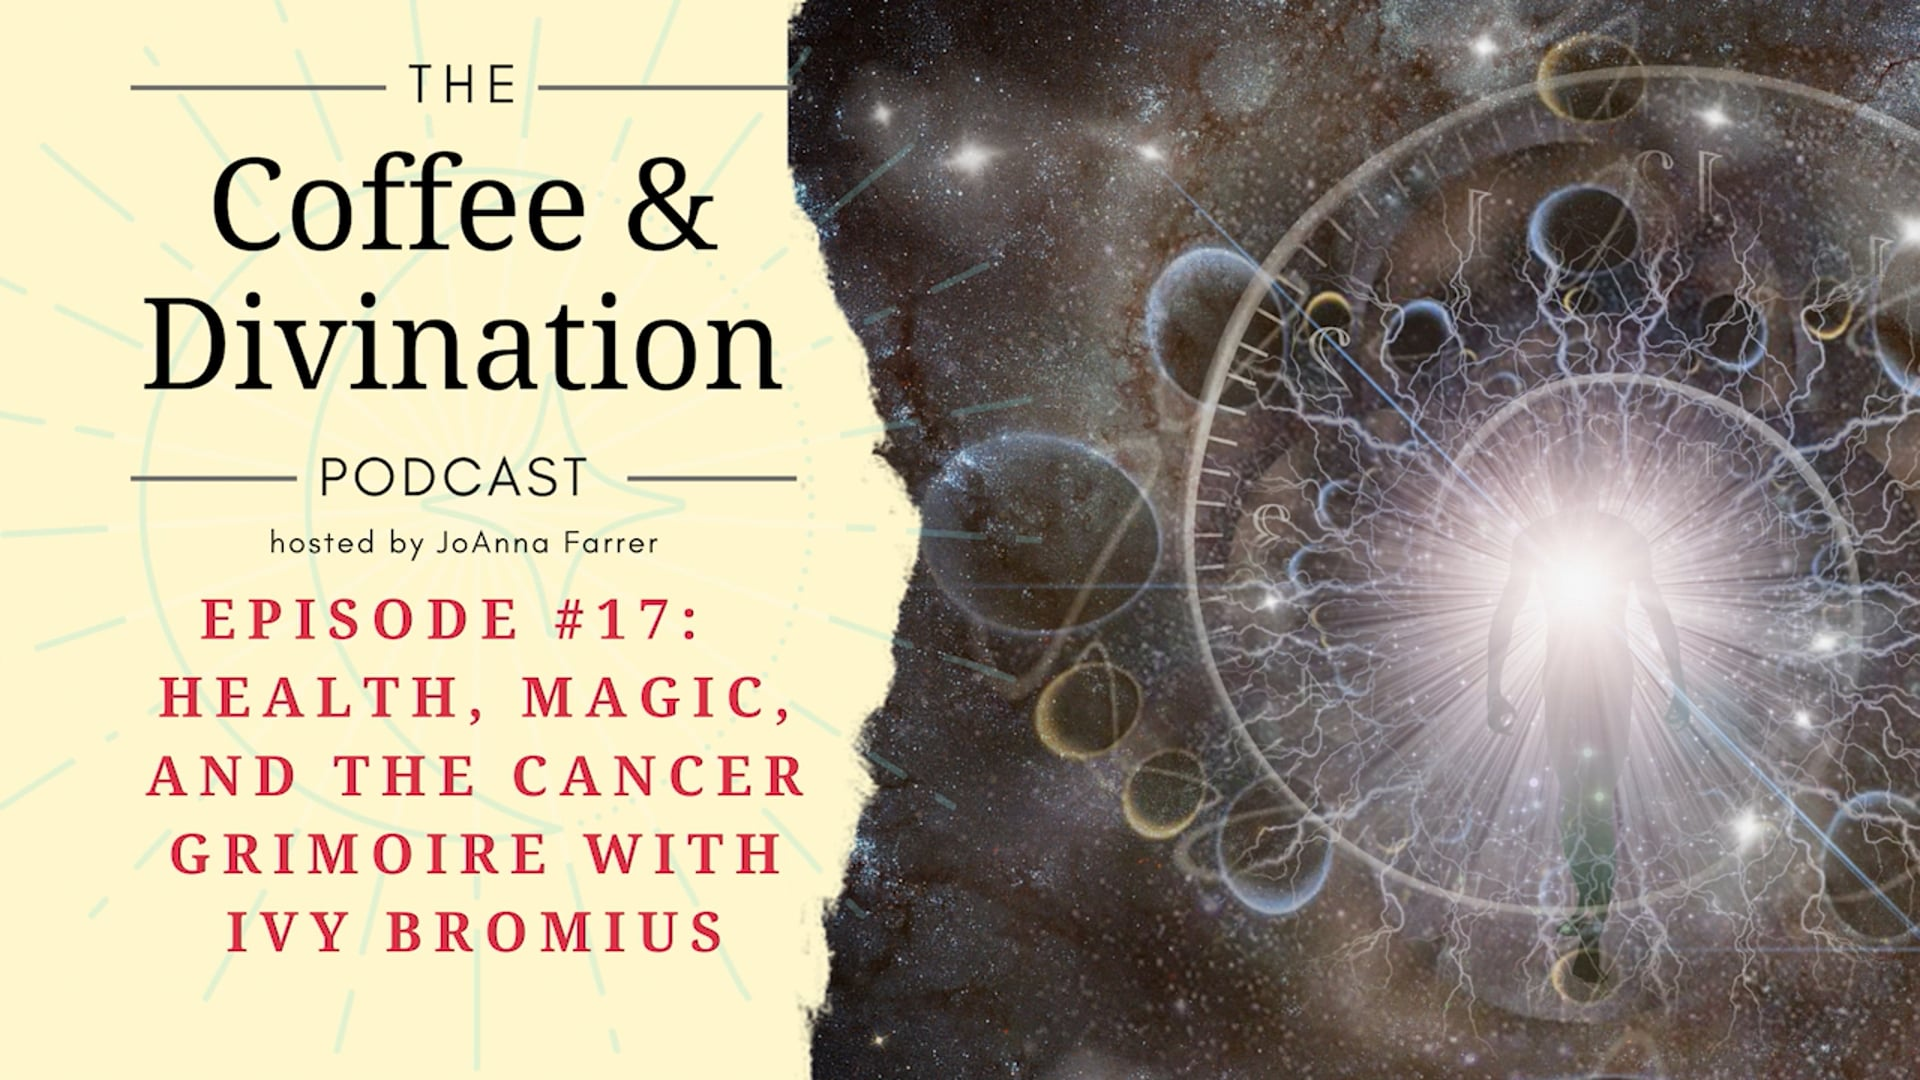 Coffee & Divination - Episode #17: Health, Magic, and the Cancer Grimoire with Ivy Bromius